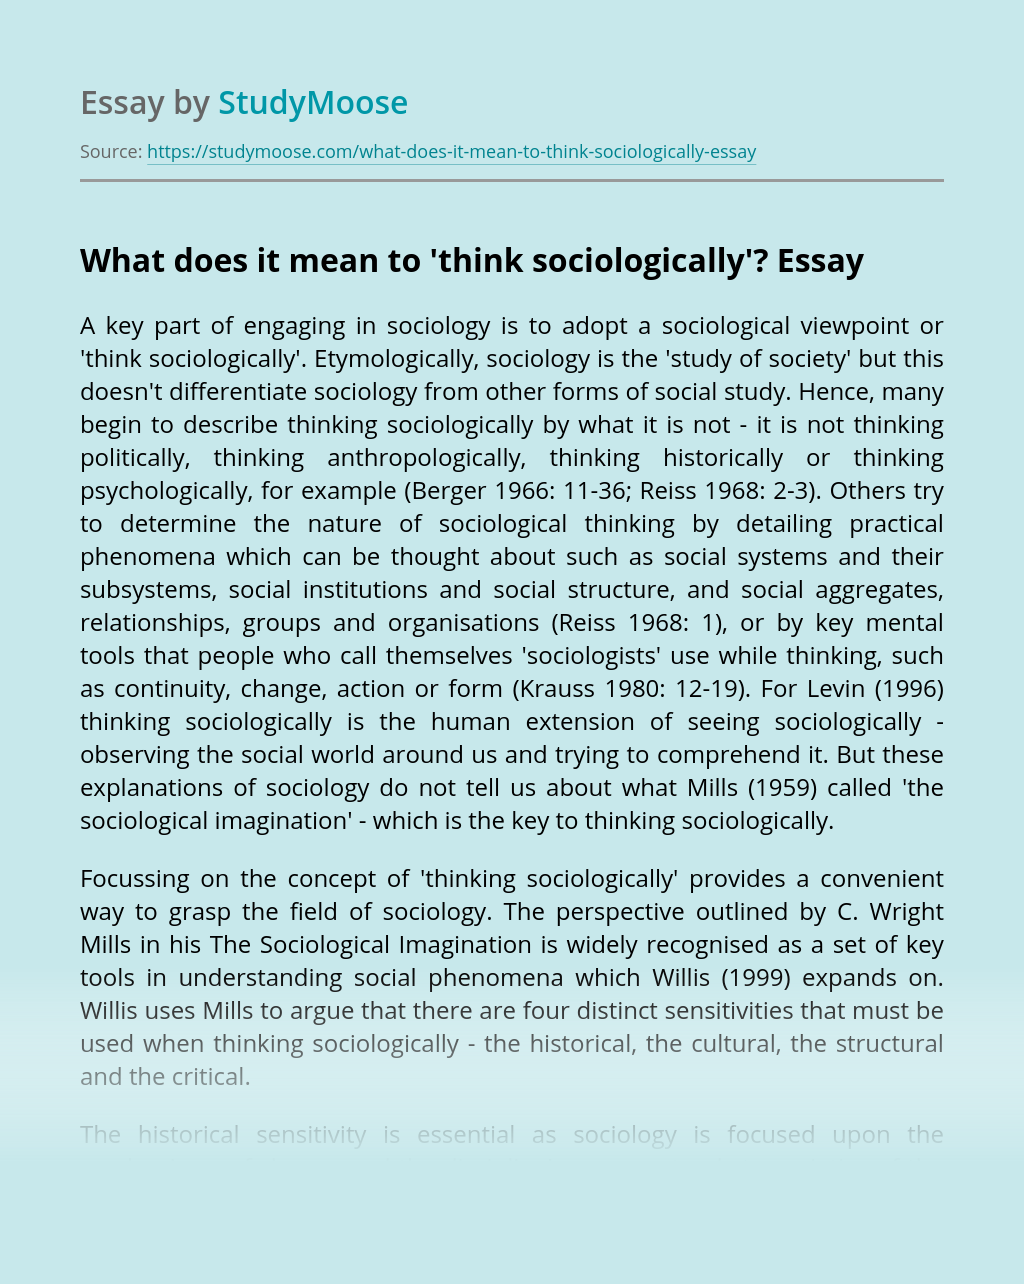 What does it mean to 'think sociologically'?